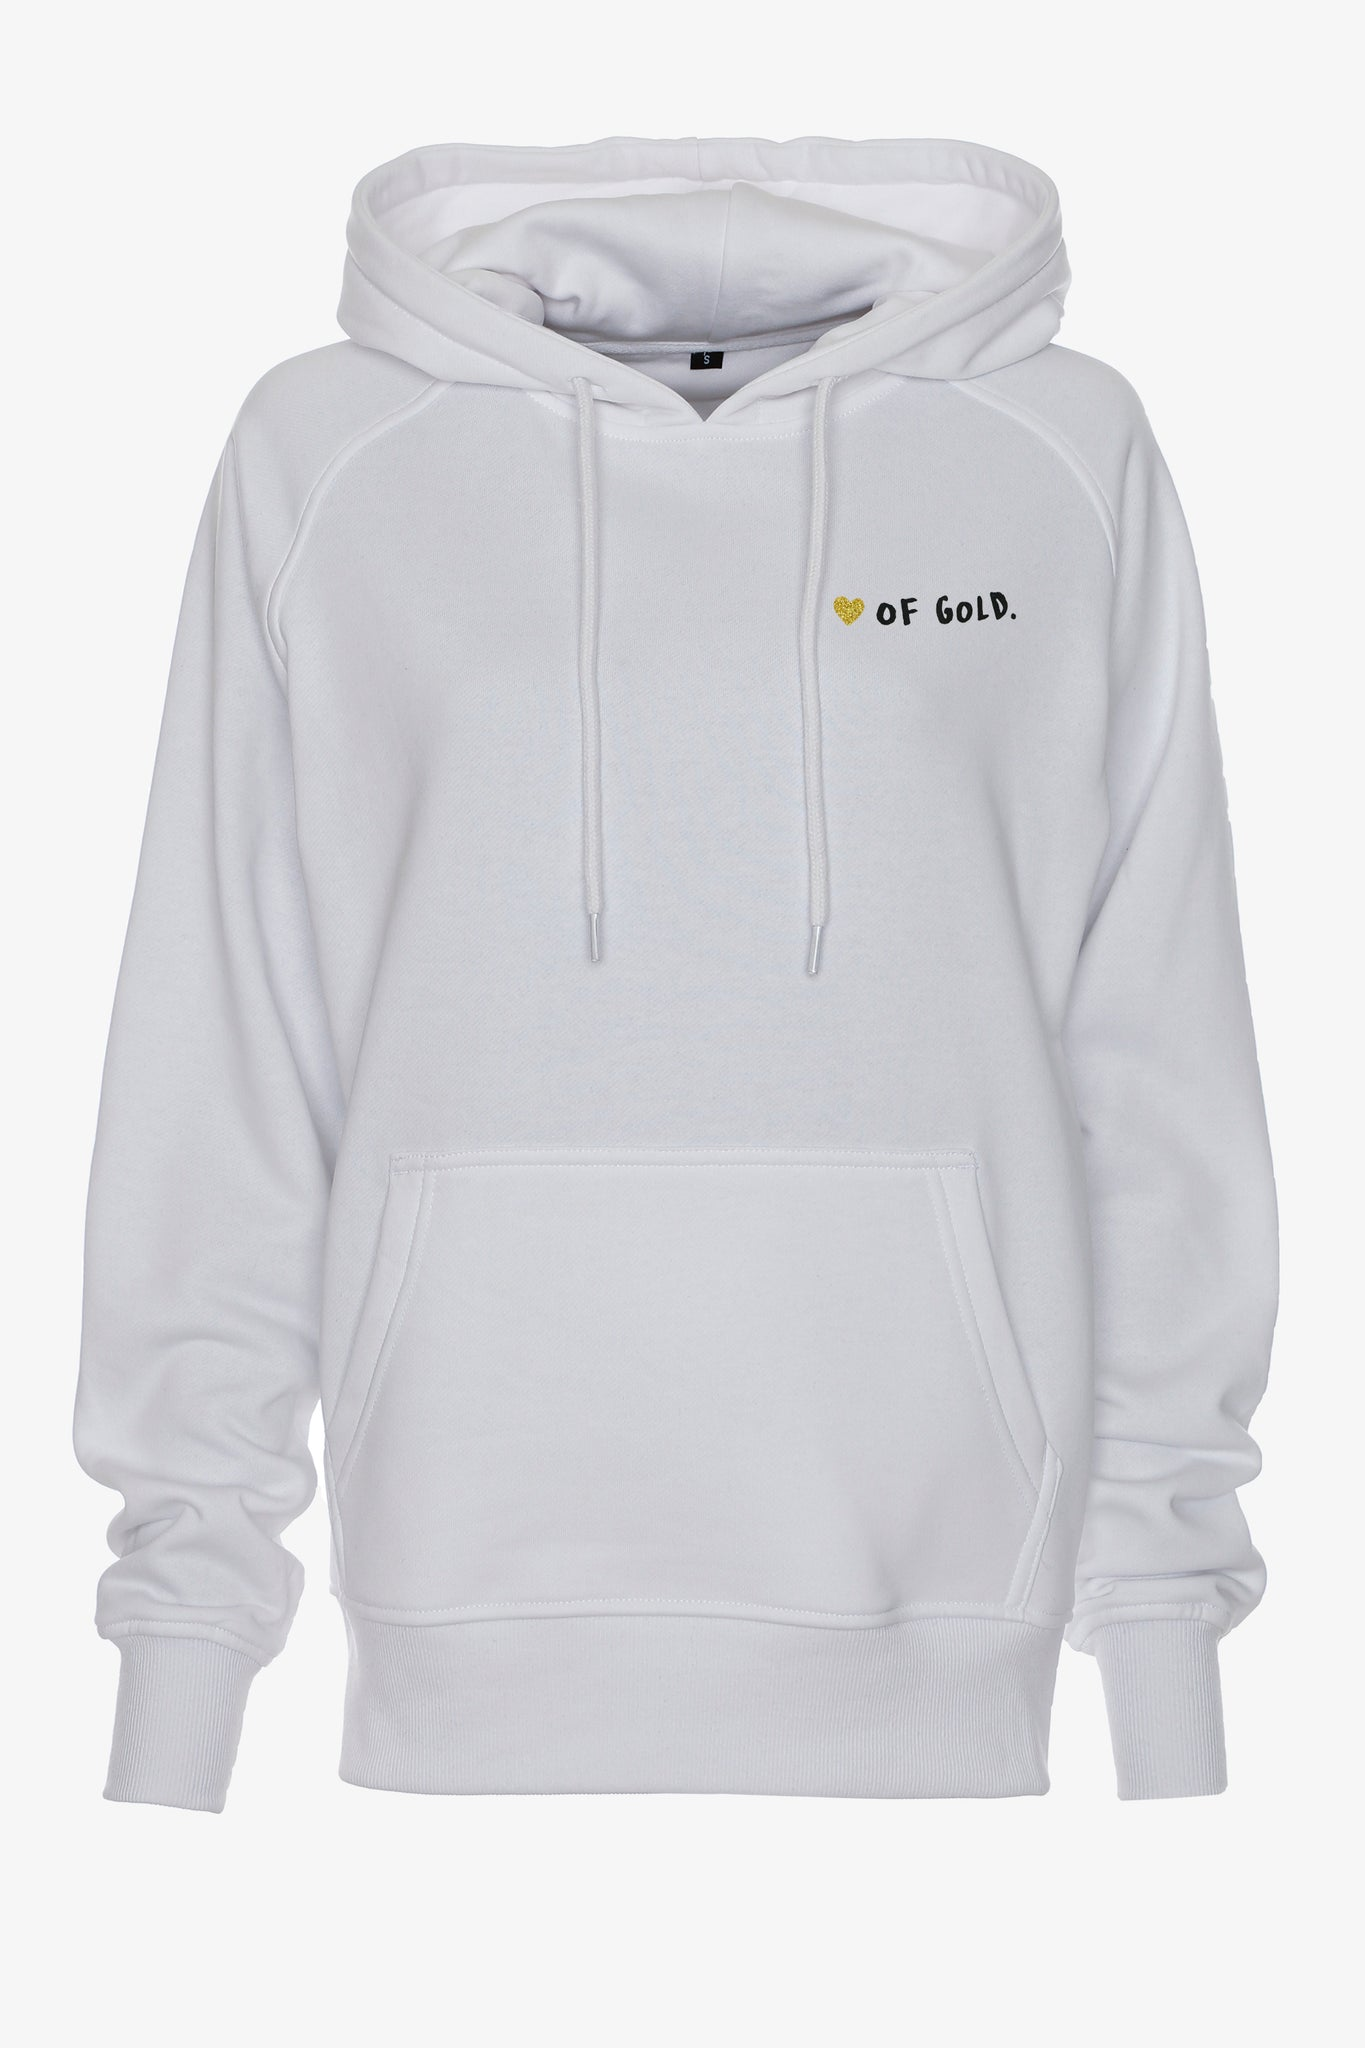 Gossengold - Heart of gold Slogan Hoodie Damen - Weiß